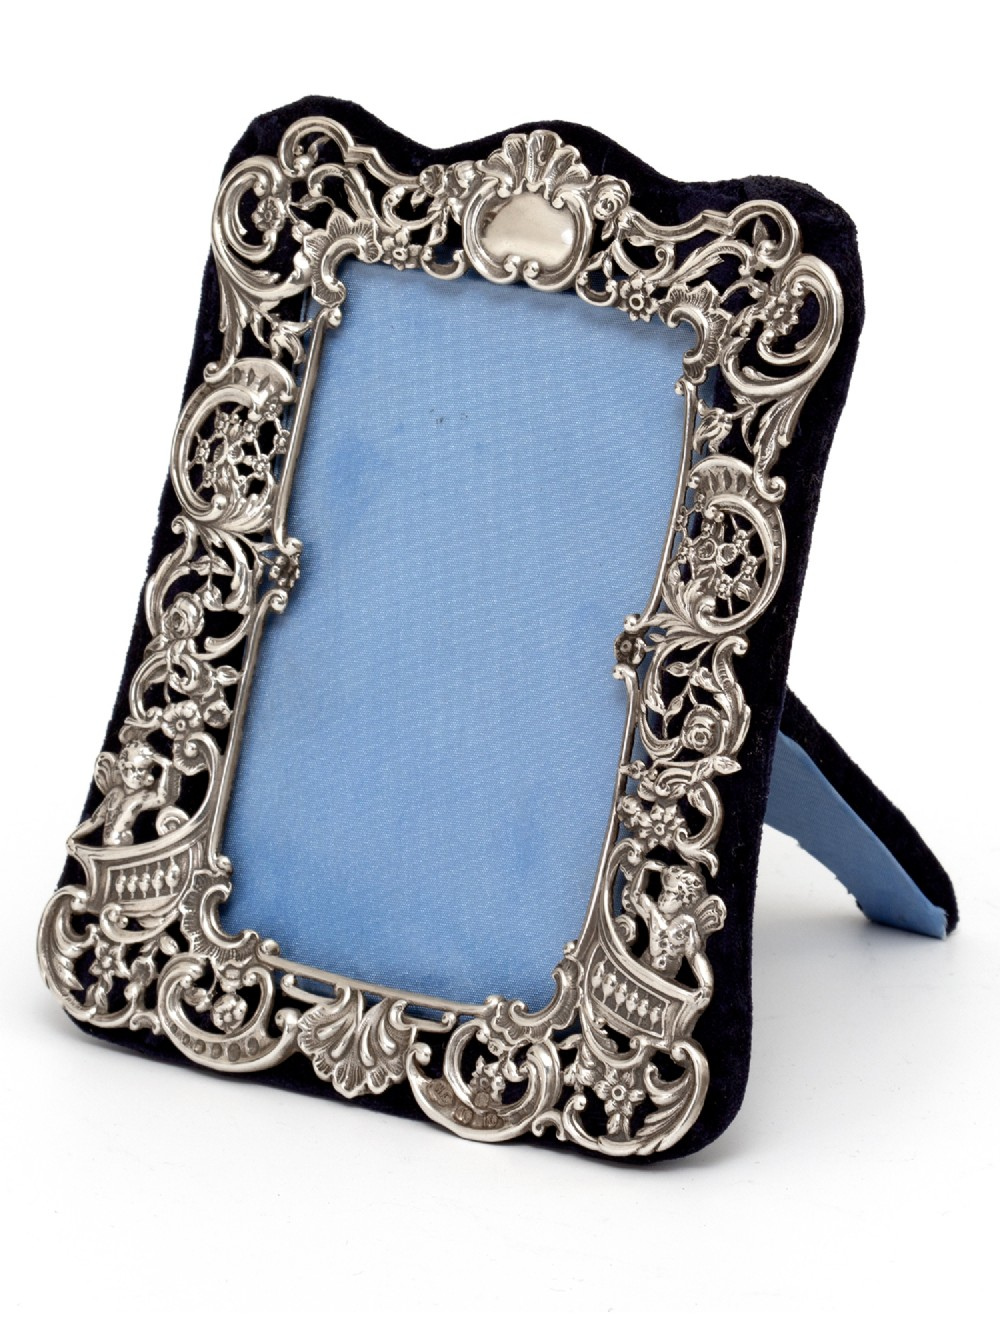 small william comyns silver photo or picture frame decorated with cherubs scrolls and flowers